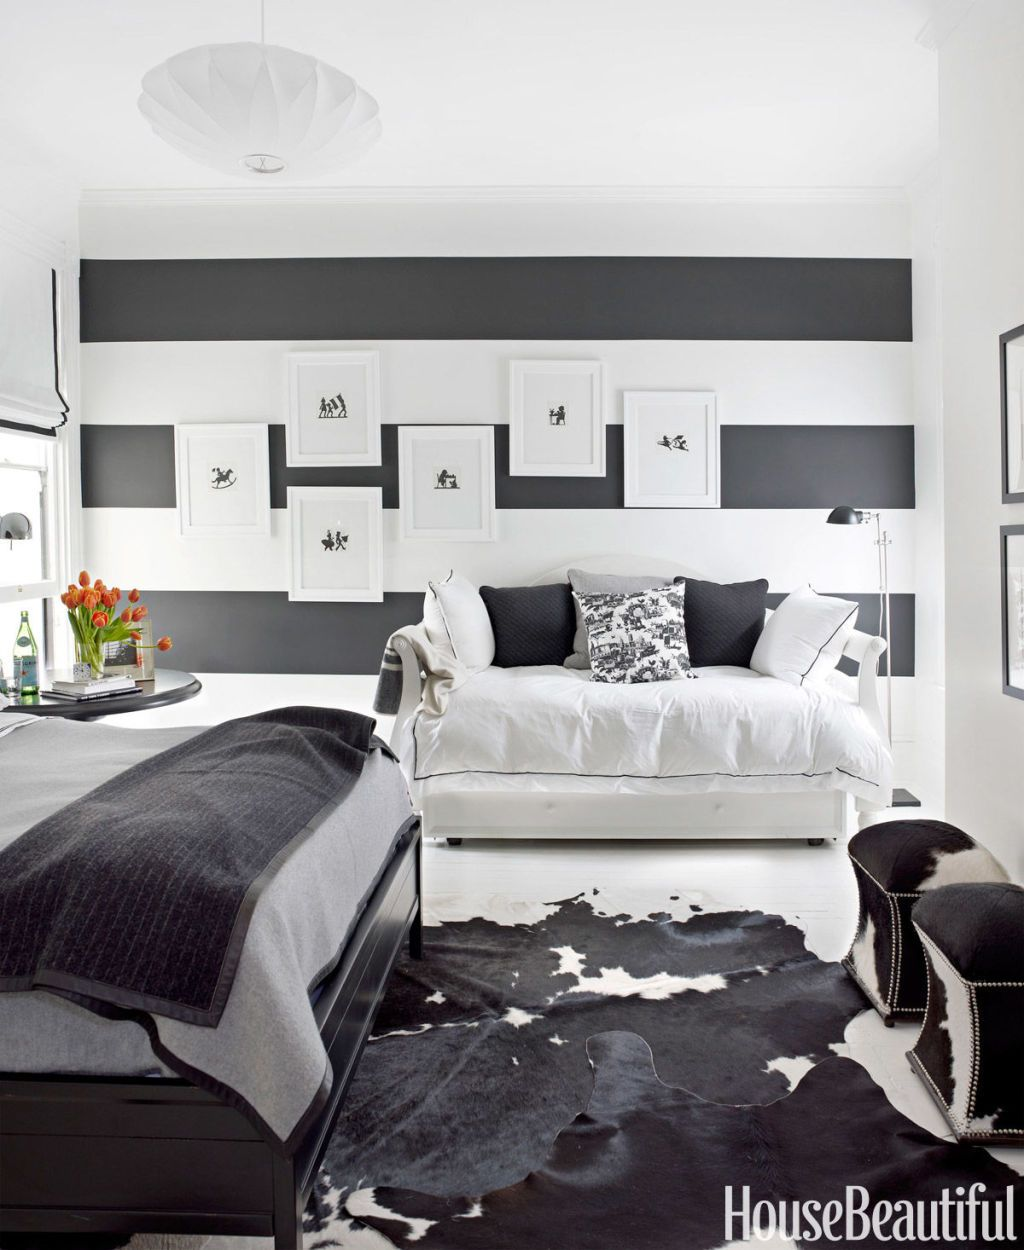 black and white designer rooms black and white decorating ideas rh housebeautiful com black and white rooms trading spaces black and white rooms tumblr